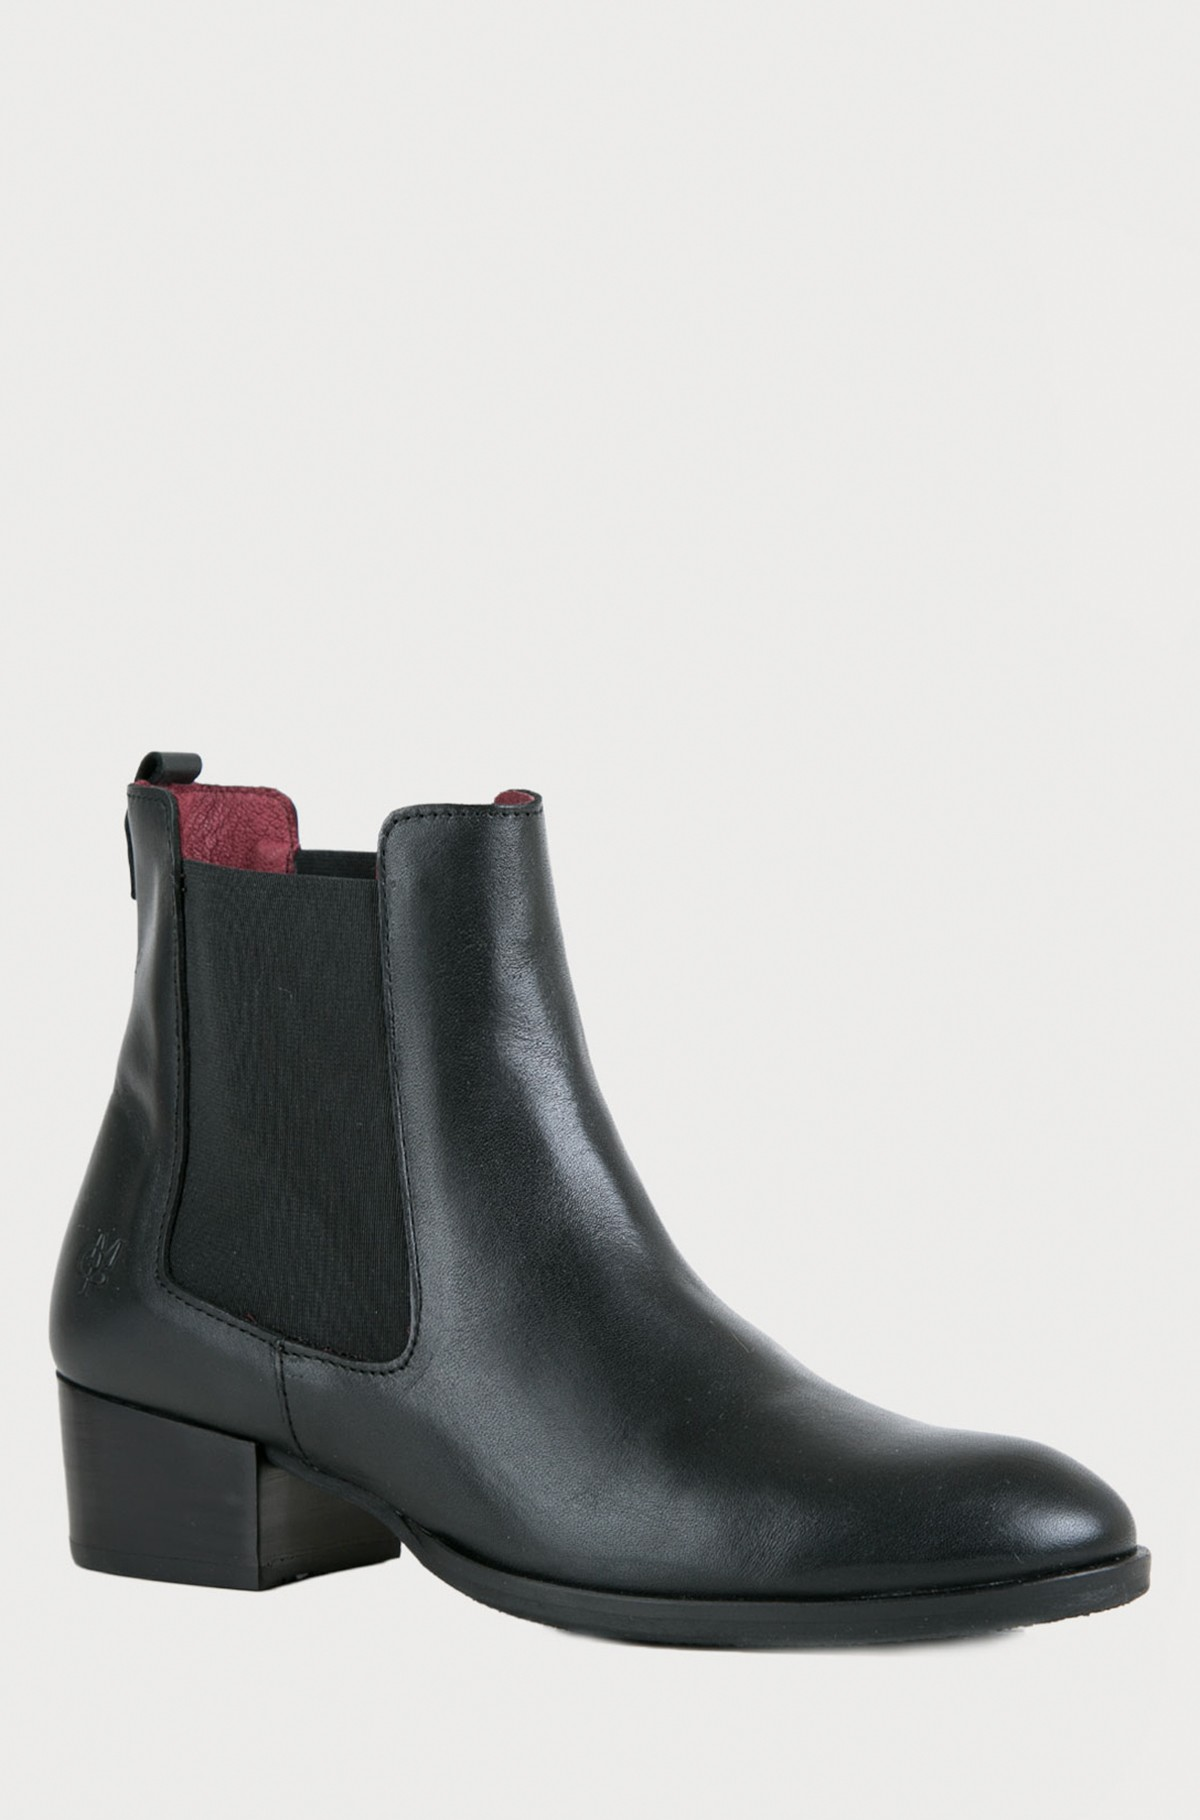 Ankle boots 607 13645101 120-full-1